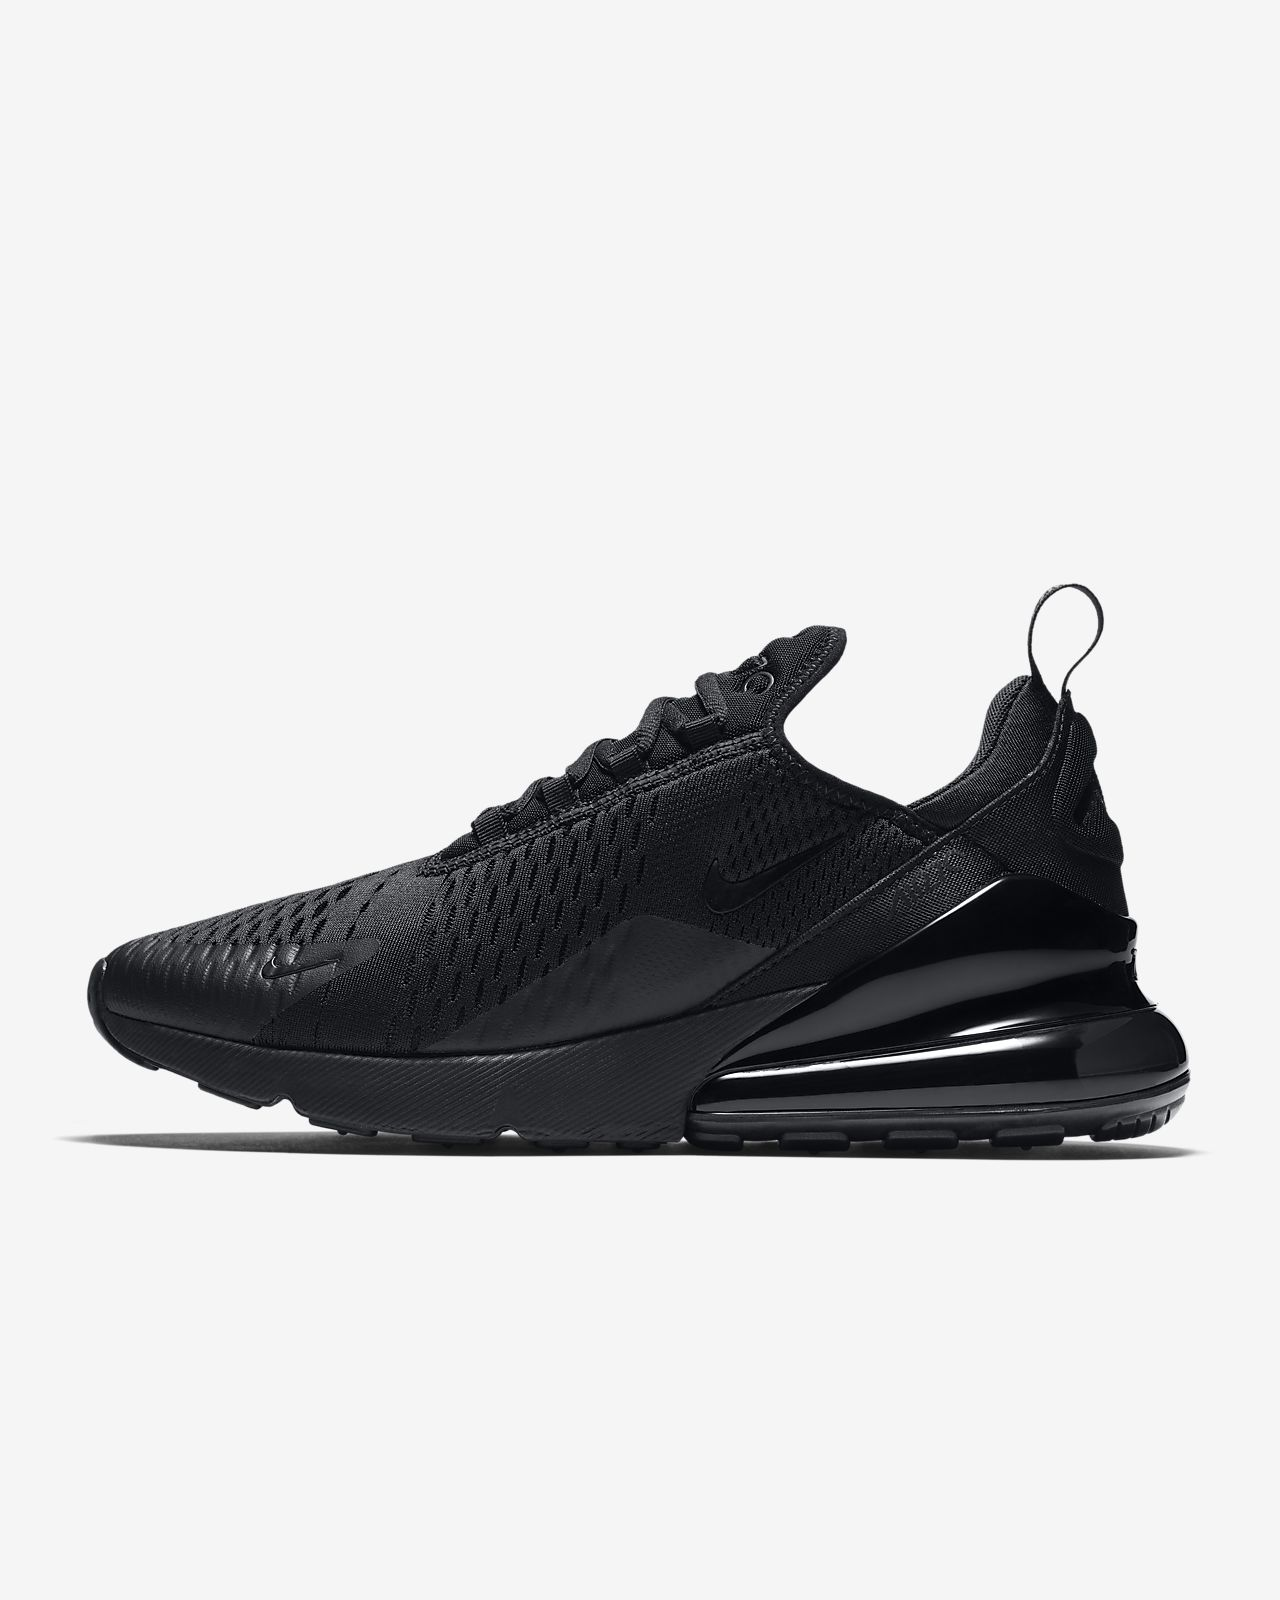 061c93fd2d9e Nike Air Max 270 Men s Shoe. Nike.com ZA